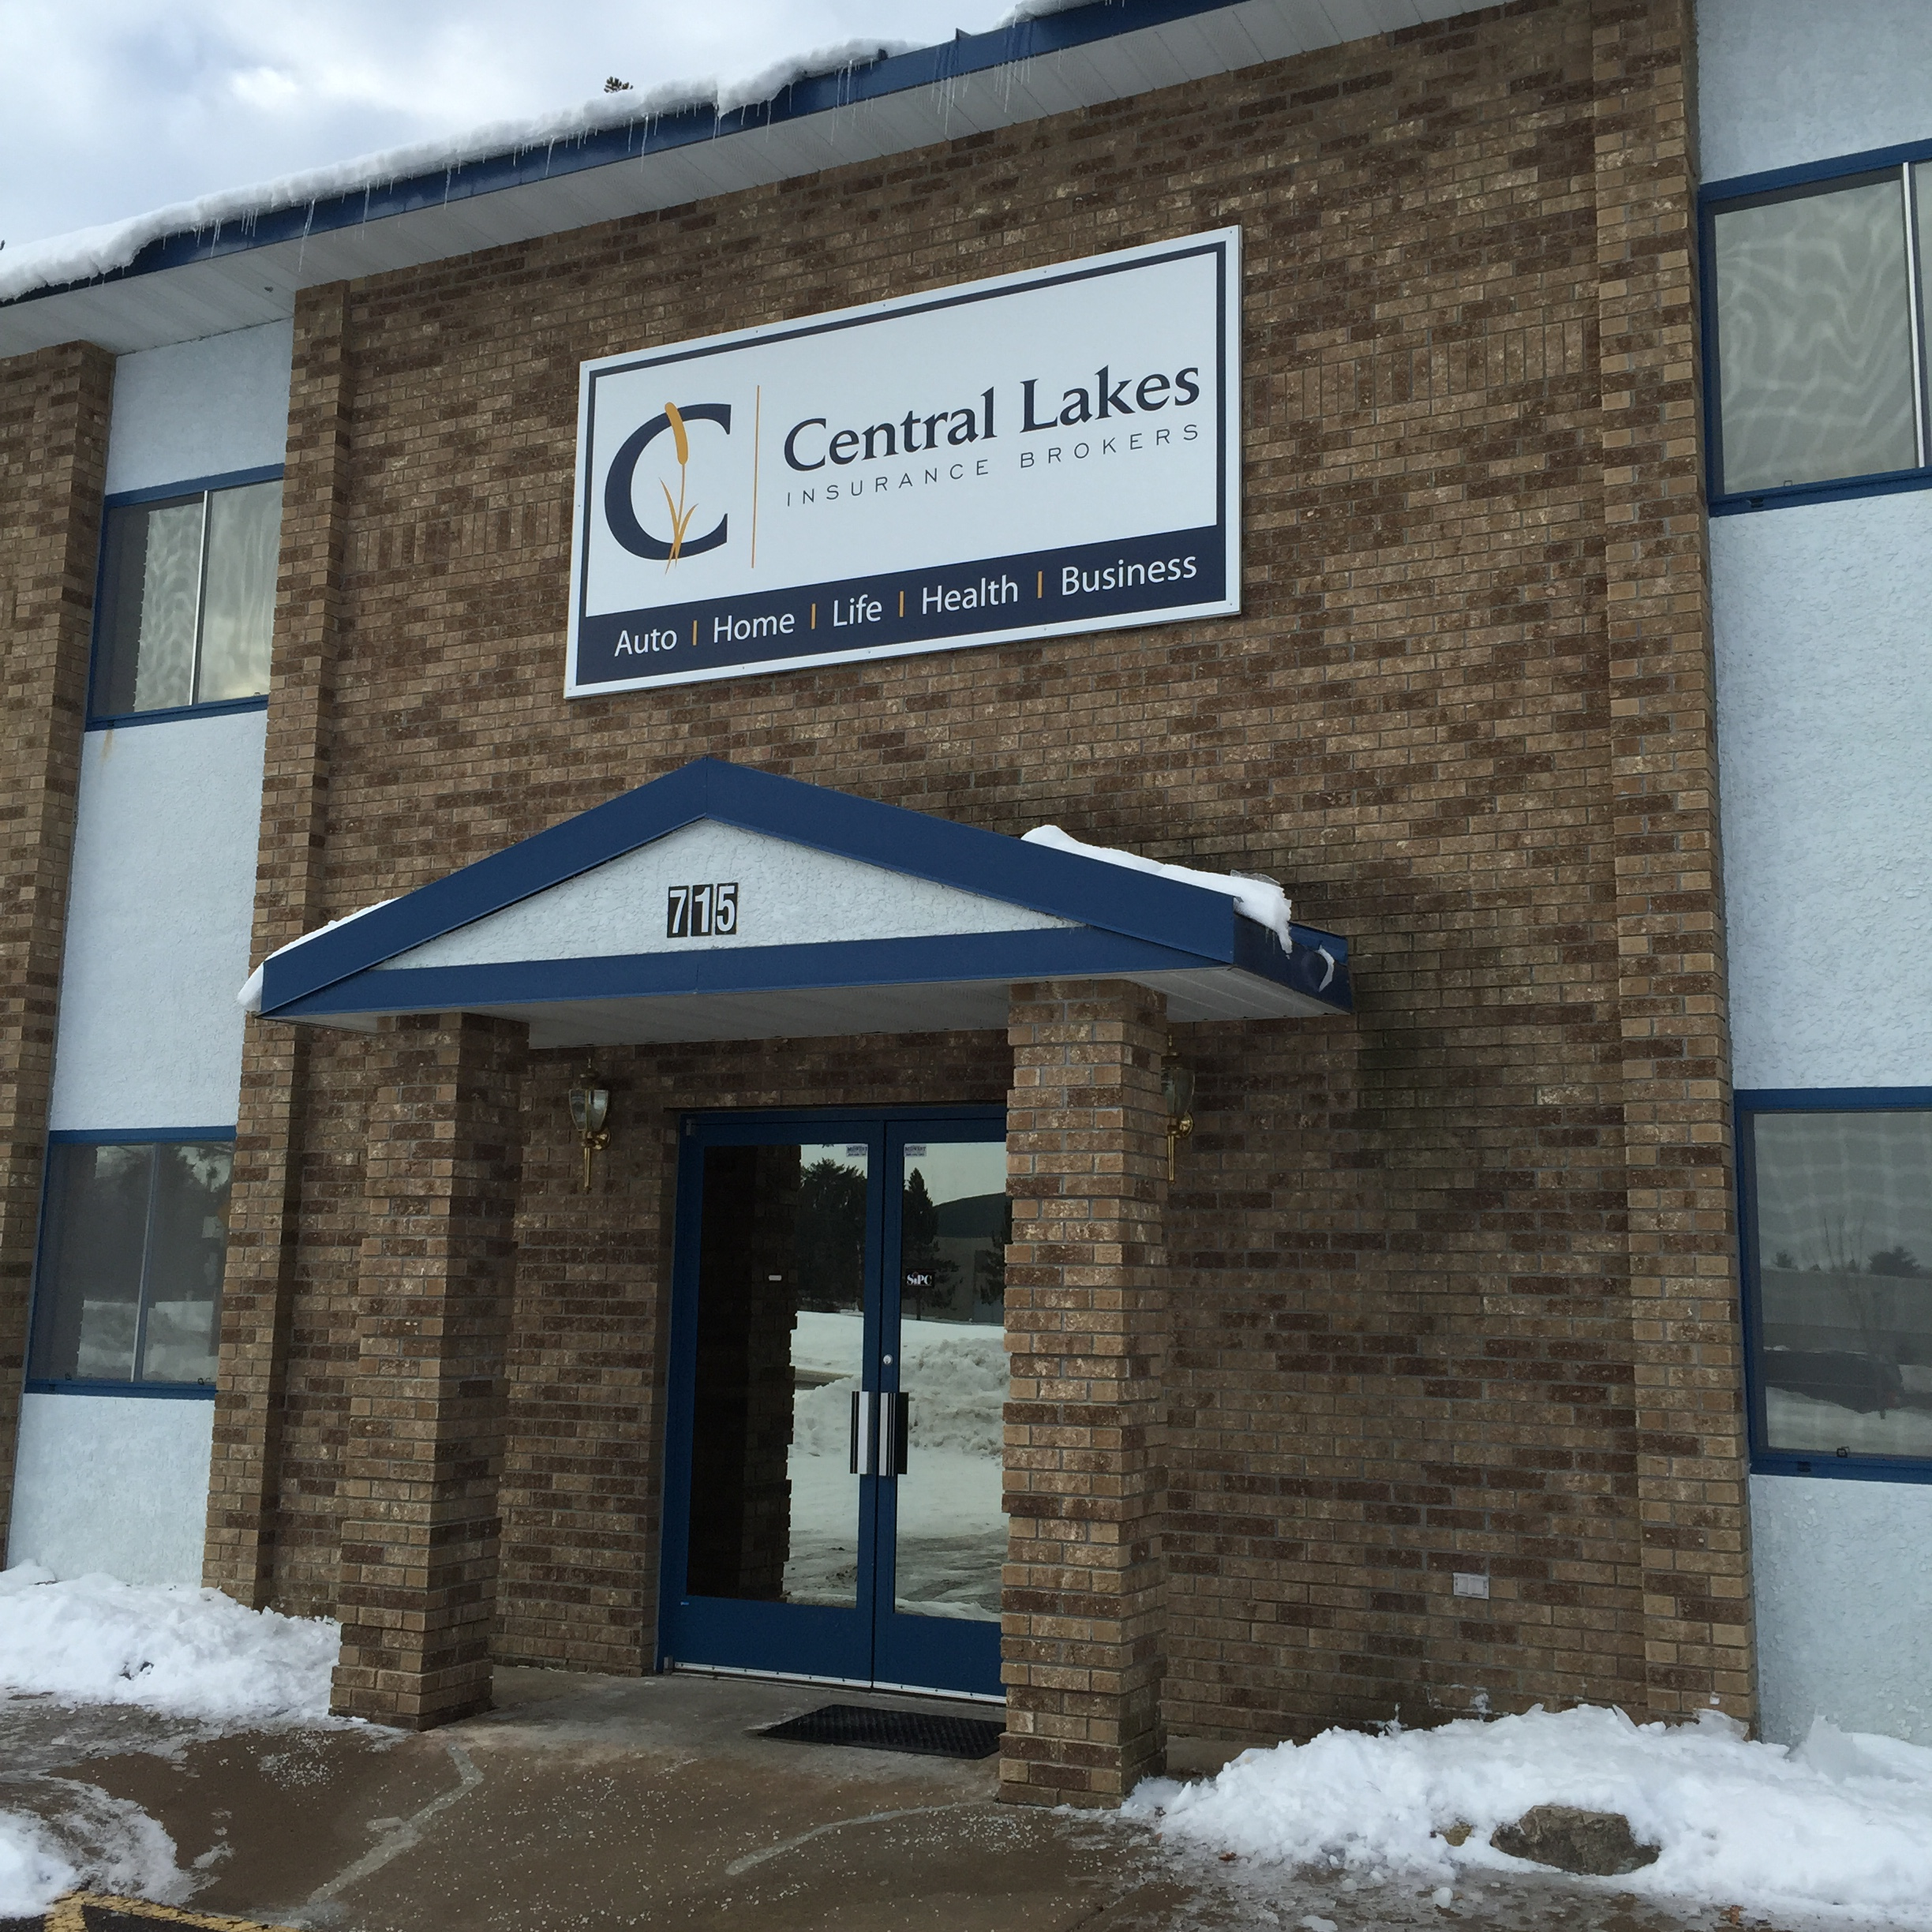 Central Lakes Insurance Brokers In Brainerd, MN